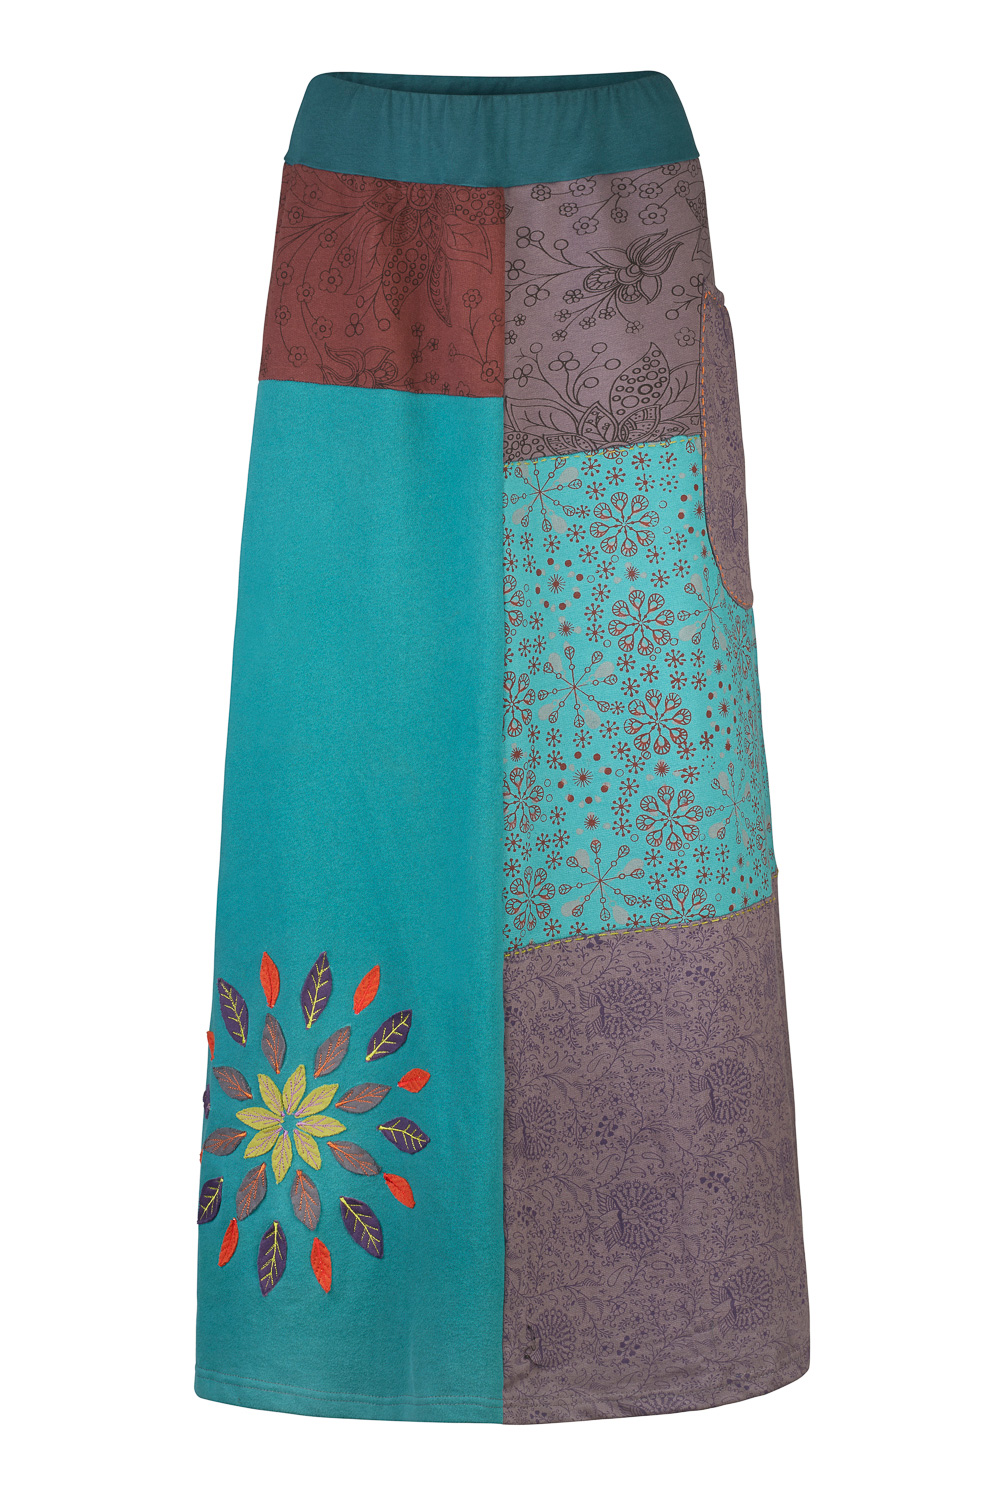 9c78d1e9f Wicked Dragon Clothing - Long warm winter skirt